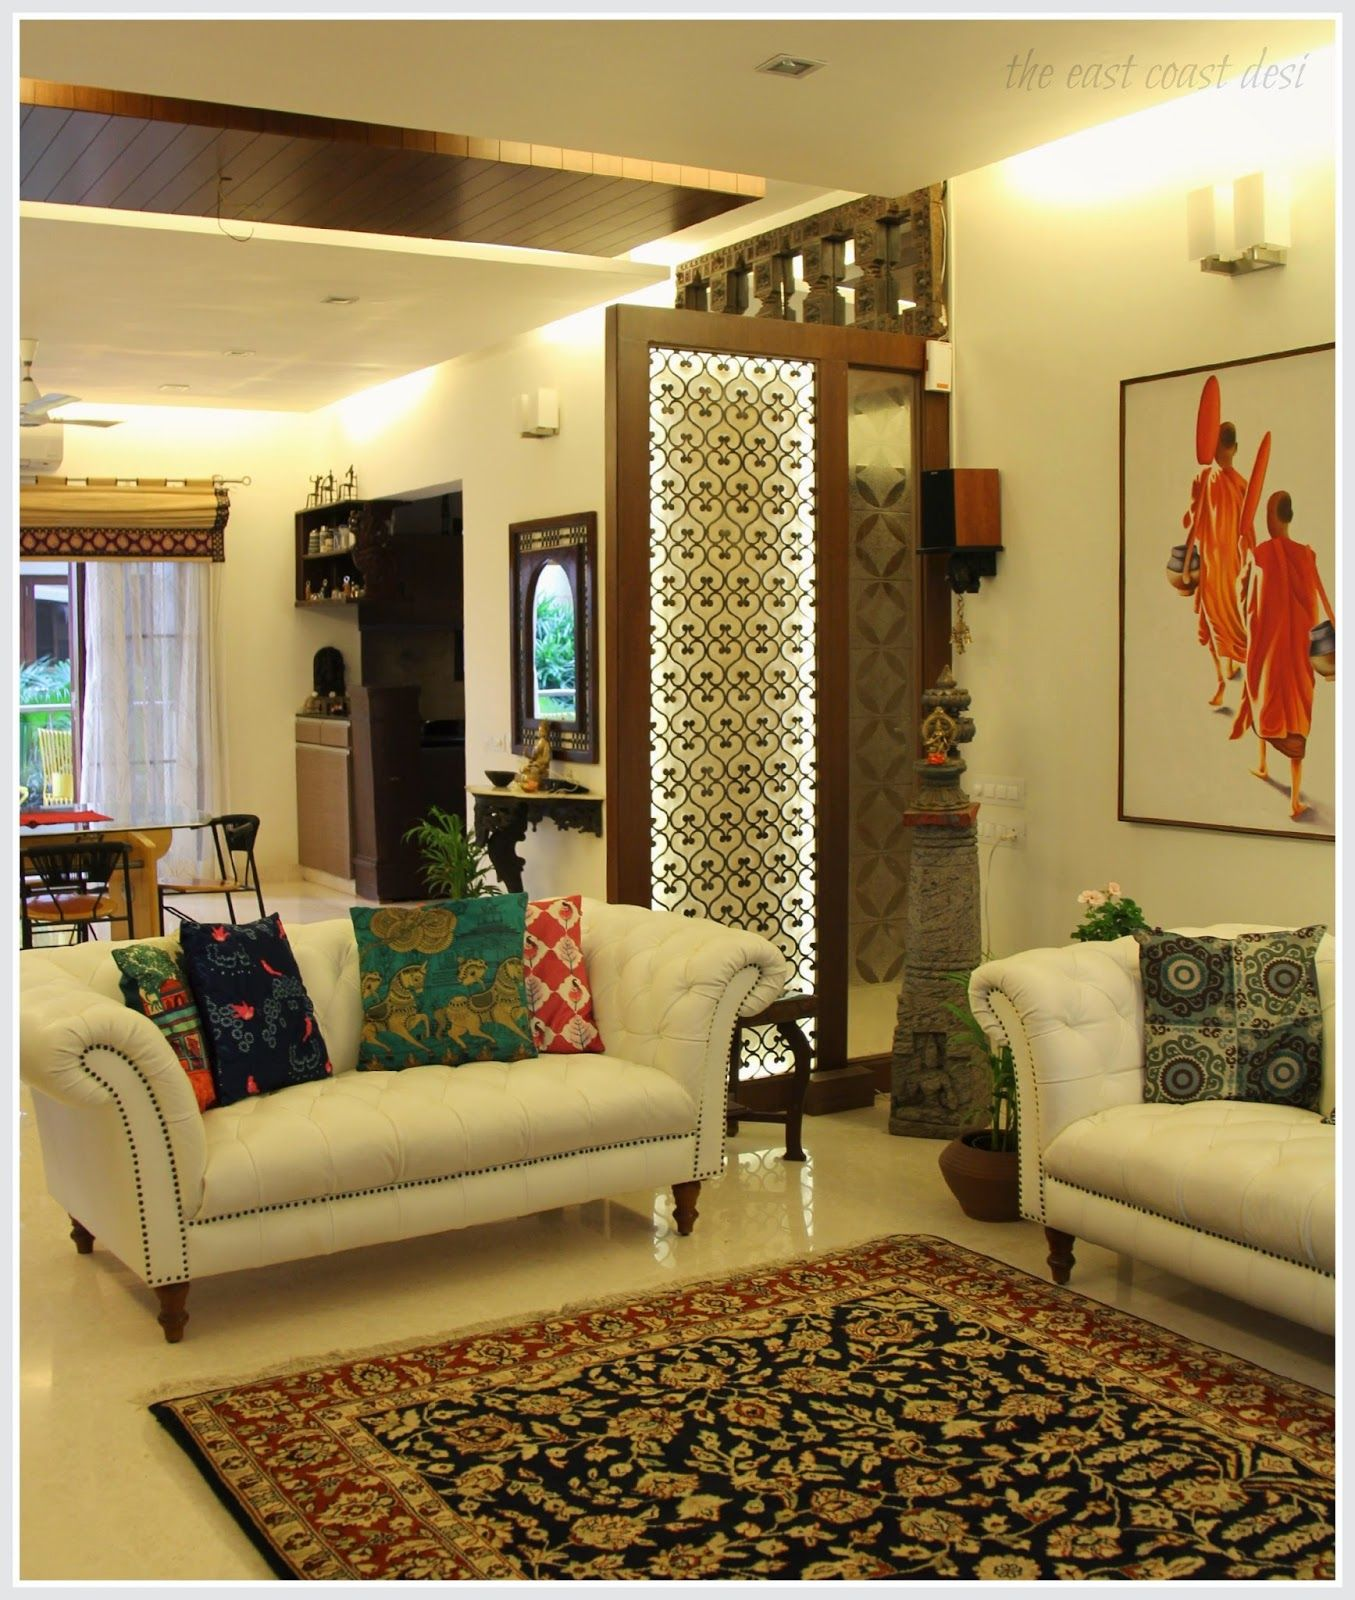 Indian Home Design: The East Coast Desi: Masterful Mixing (Home Tour)